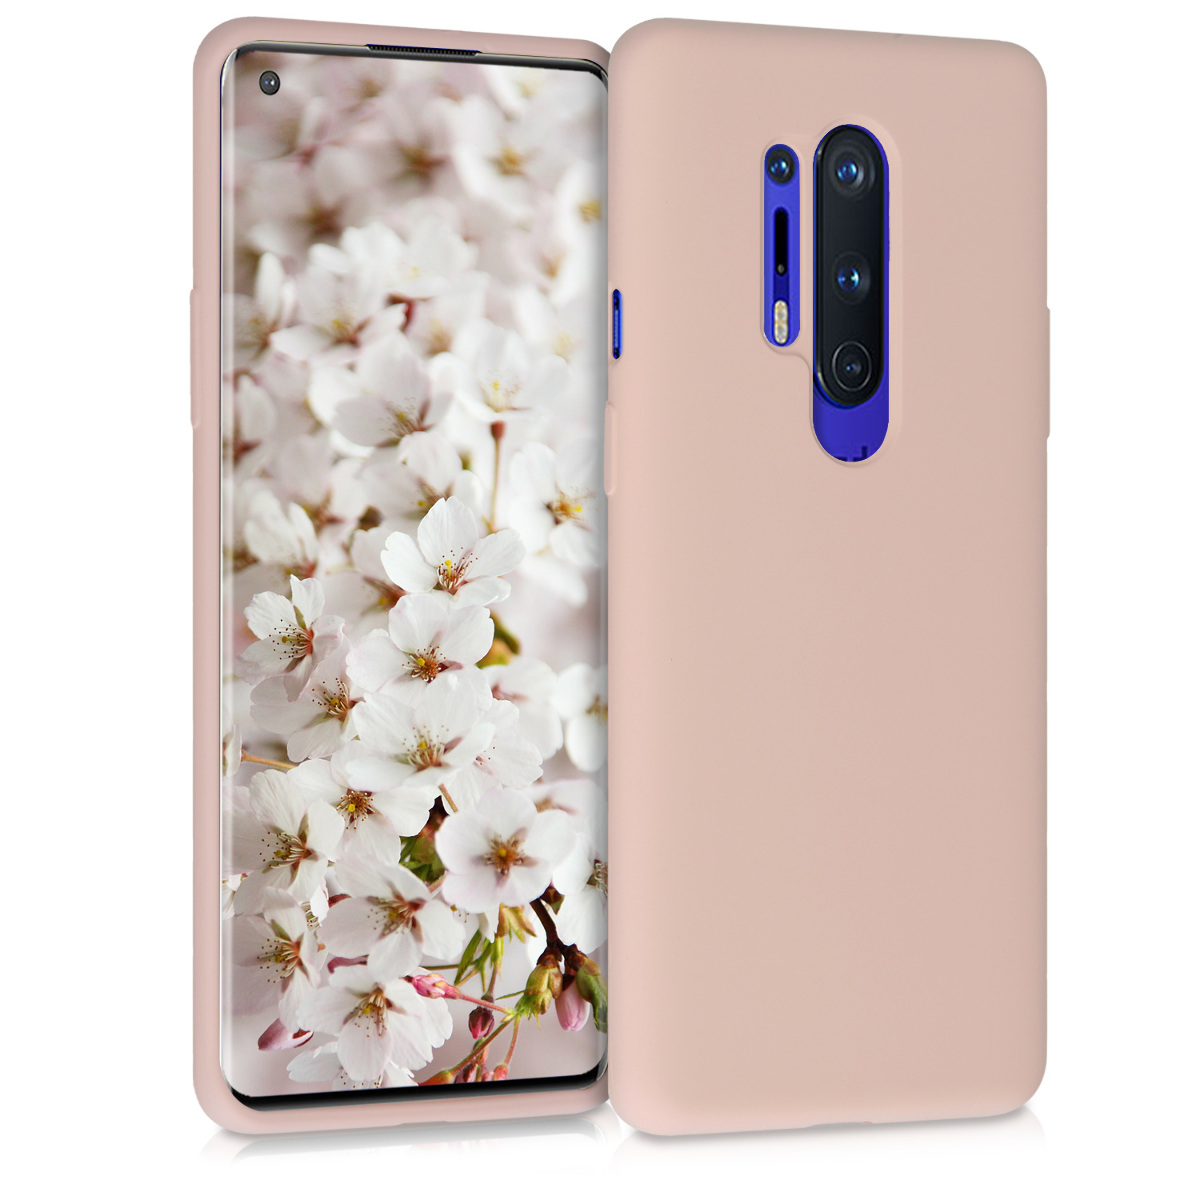 KW Θήκη Σιλικόνης OnePlus 8 Pro - Soft Flexible Rubber Protective Cover - Dusty Pink (51714.10)